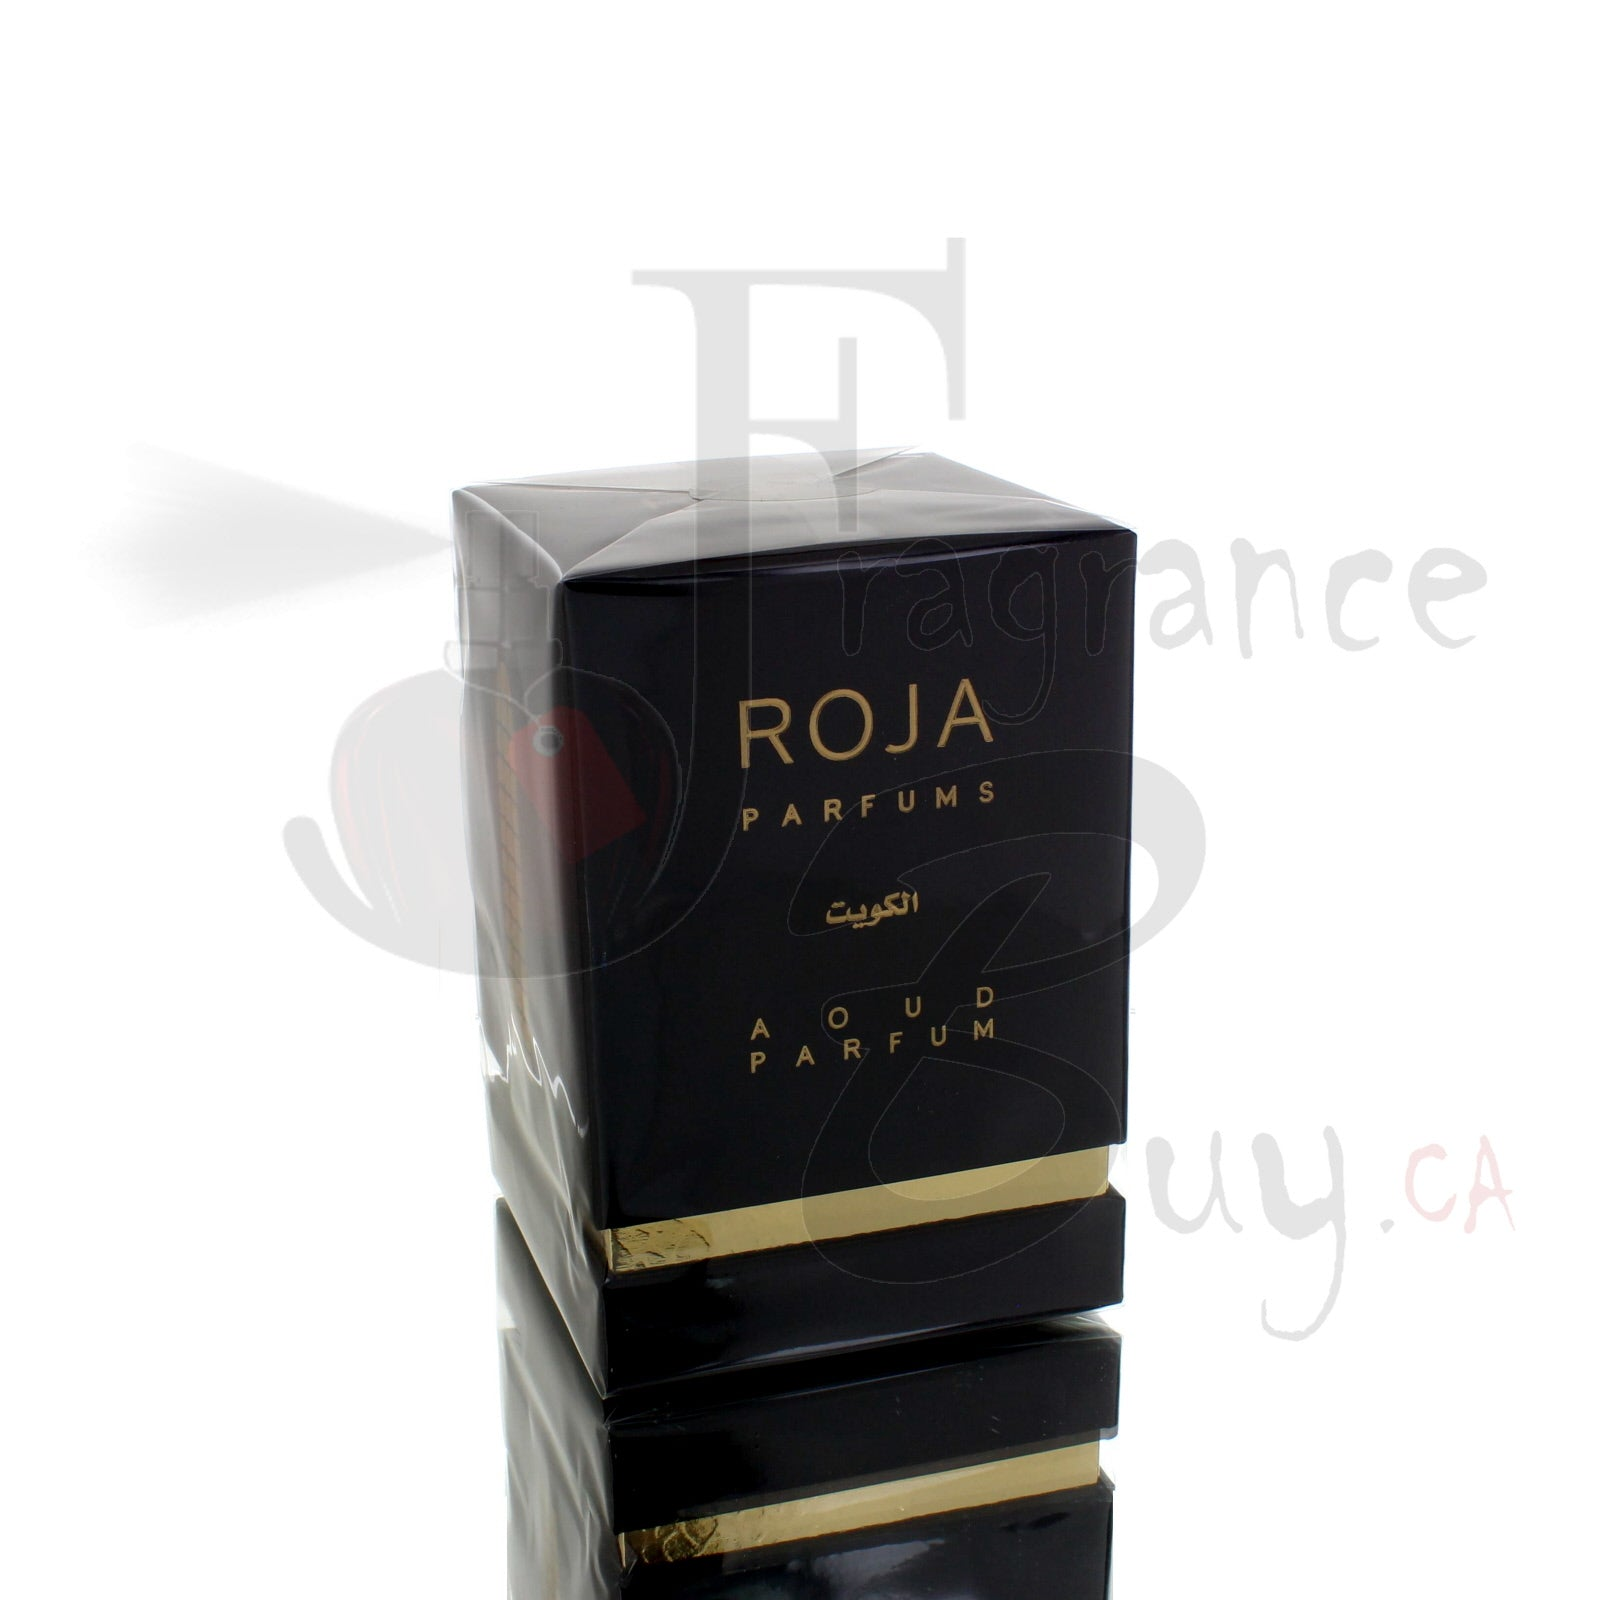 Roja Qatar Parfum For Man/Woman